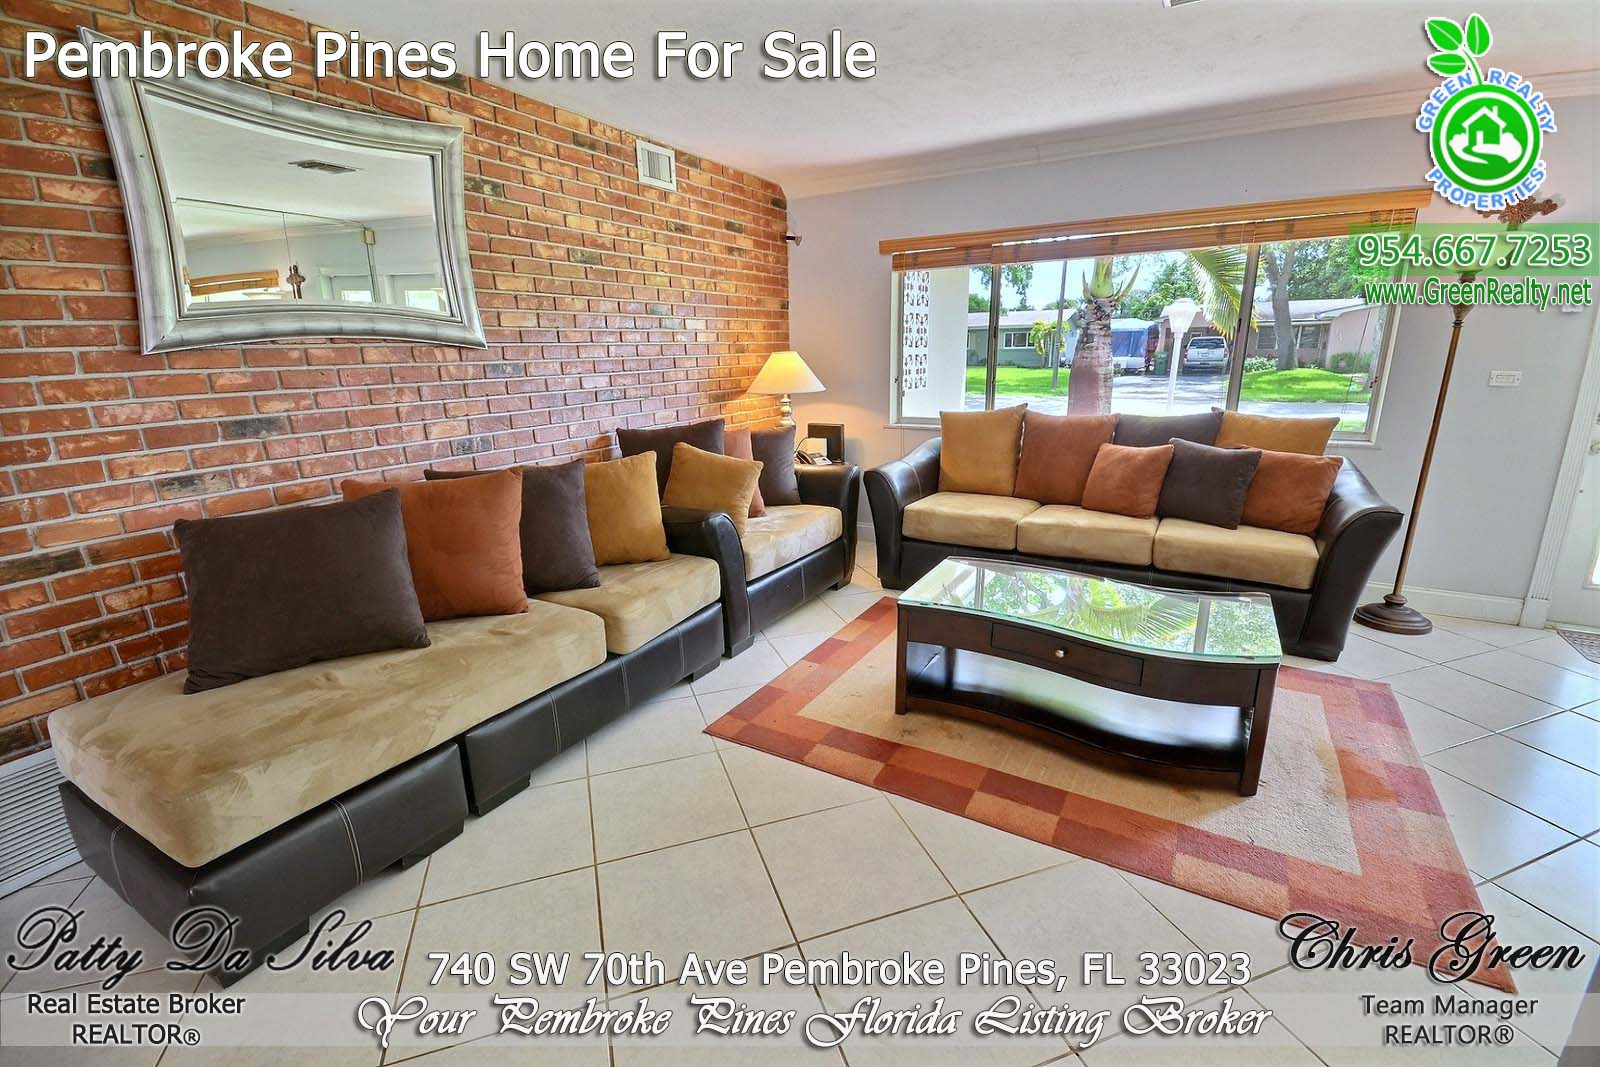 5 Pembroke Pines Homes For Sale (3)